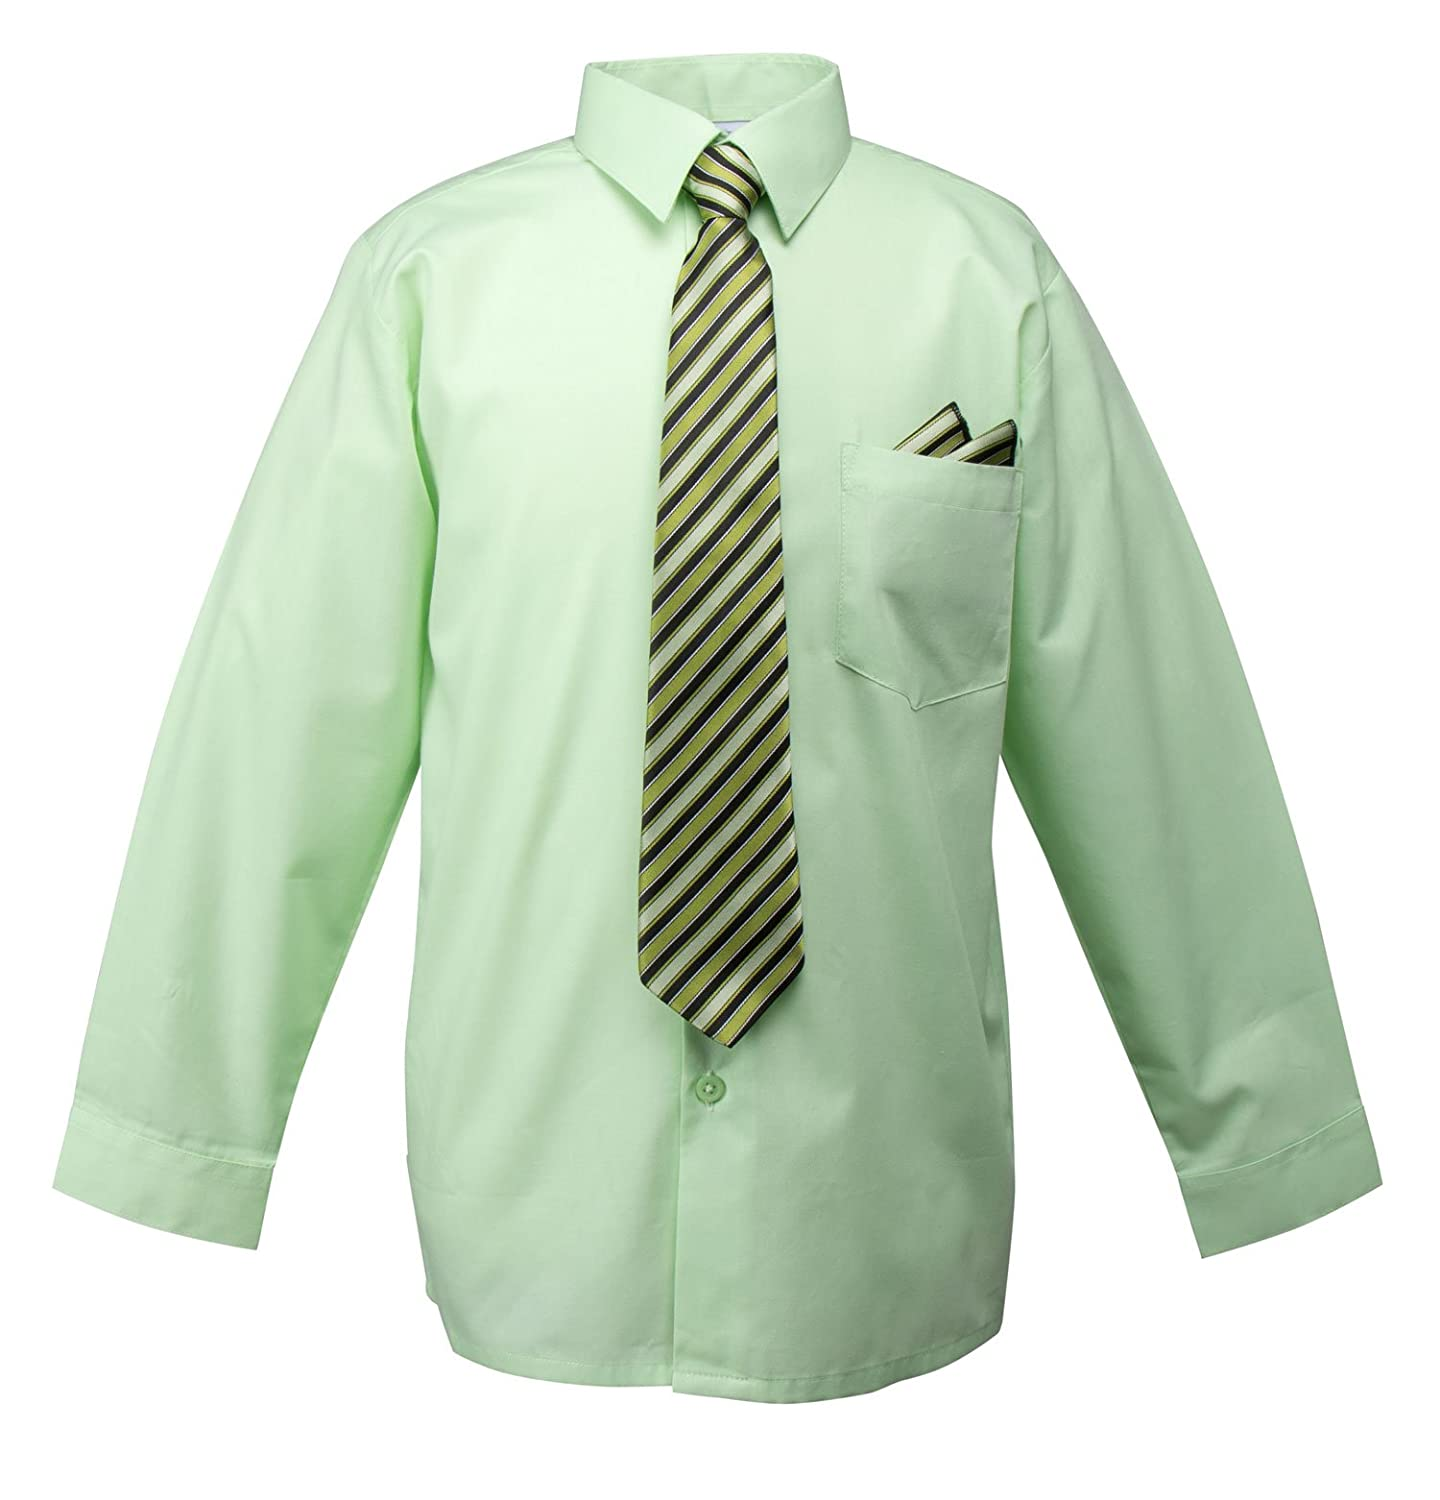 Spring Notion Boys Dress Shirt with Tie and Handkerchief Set ERF858-SNS-858